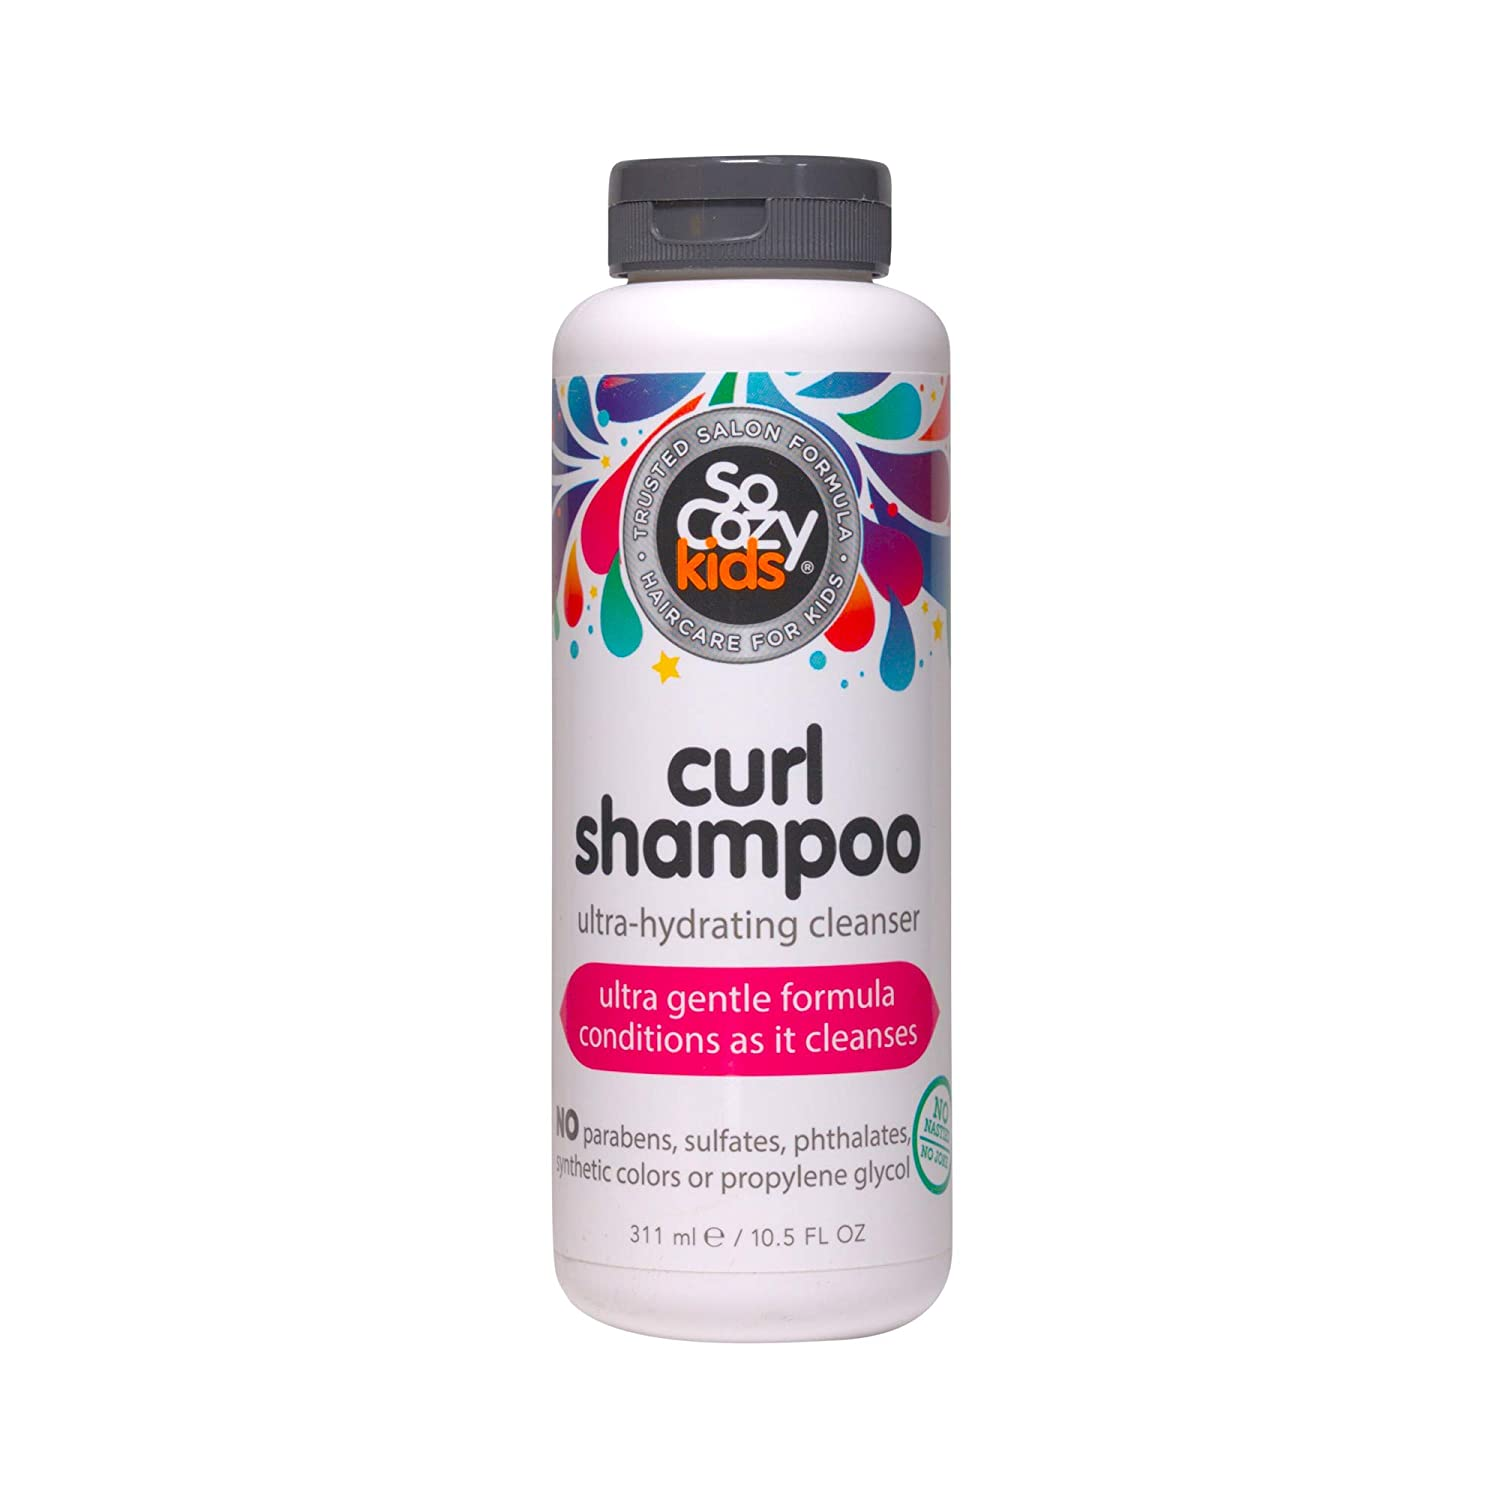 shampoo for babies with curly hair